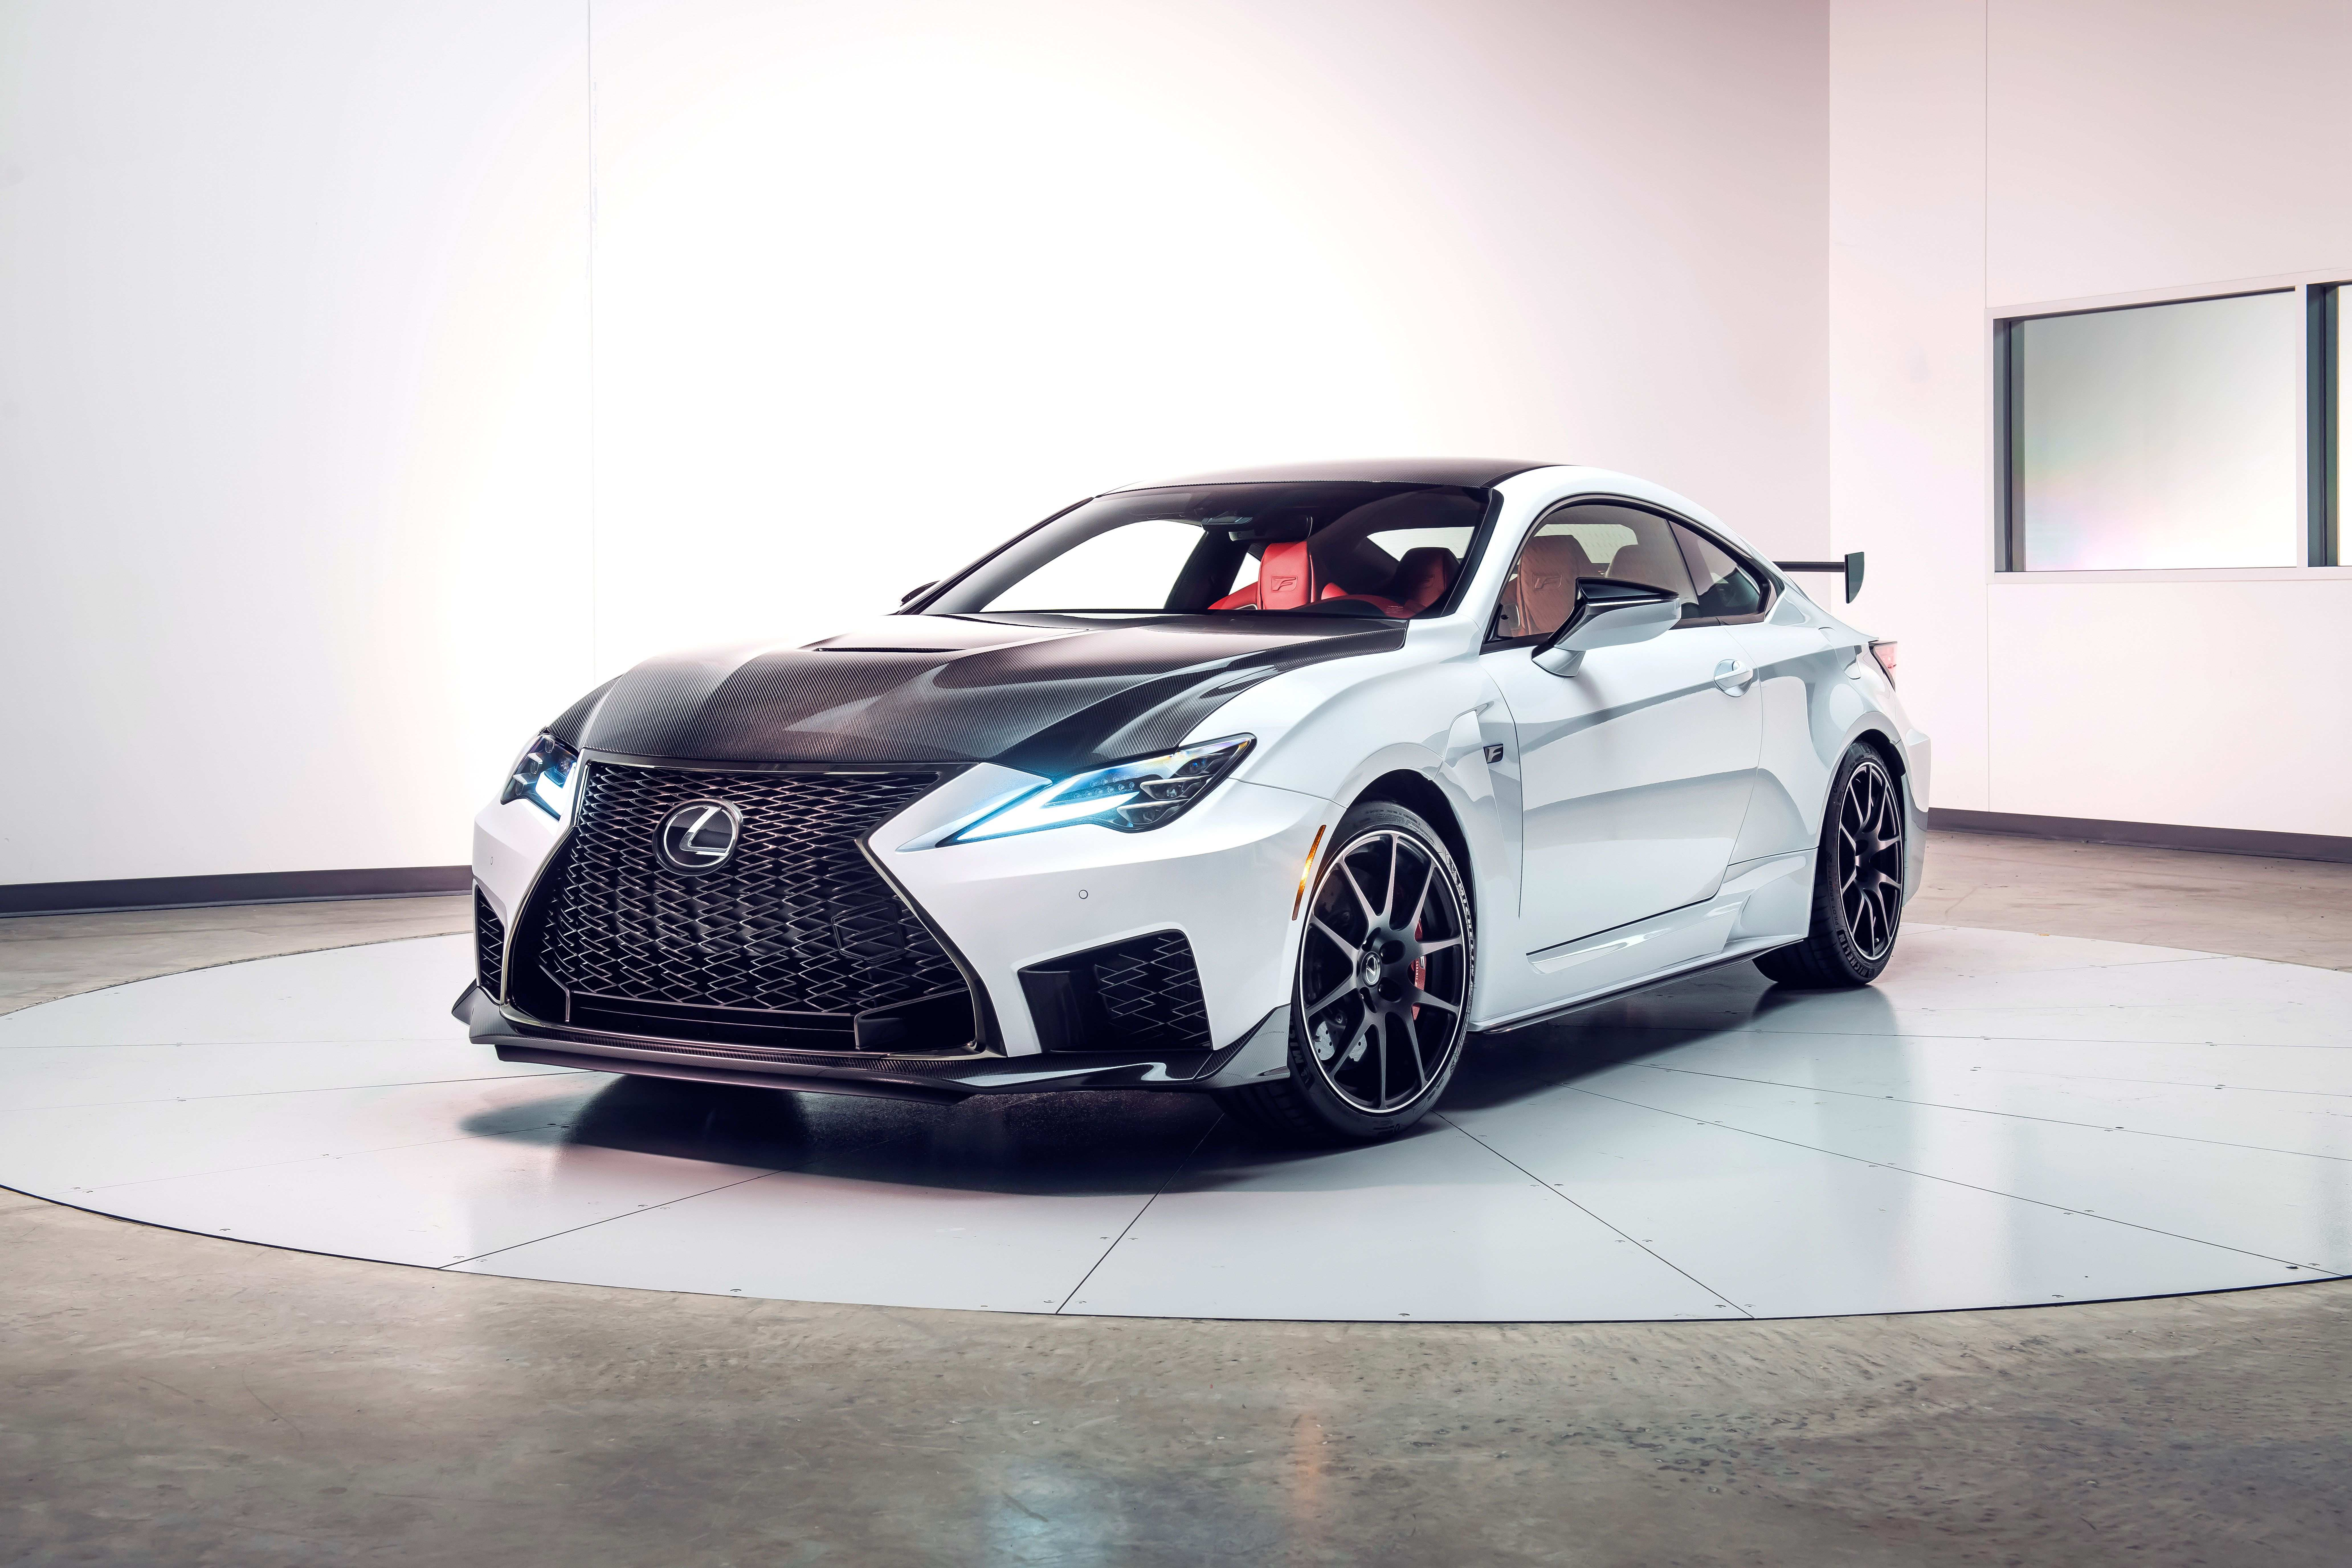 30 All New 2020 Lexus Rc F Track Edition Price Specs and Review for 2020 Lexus Rc F Track Edition Price